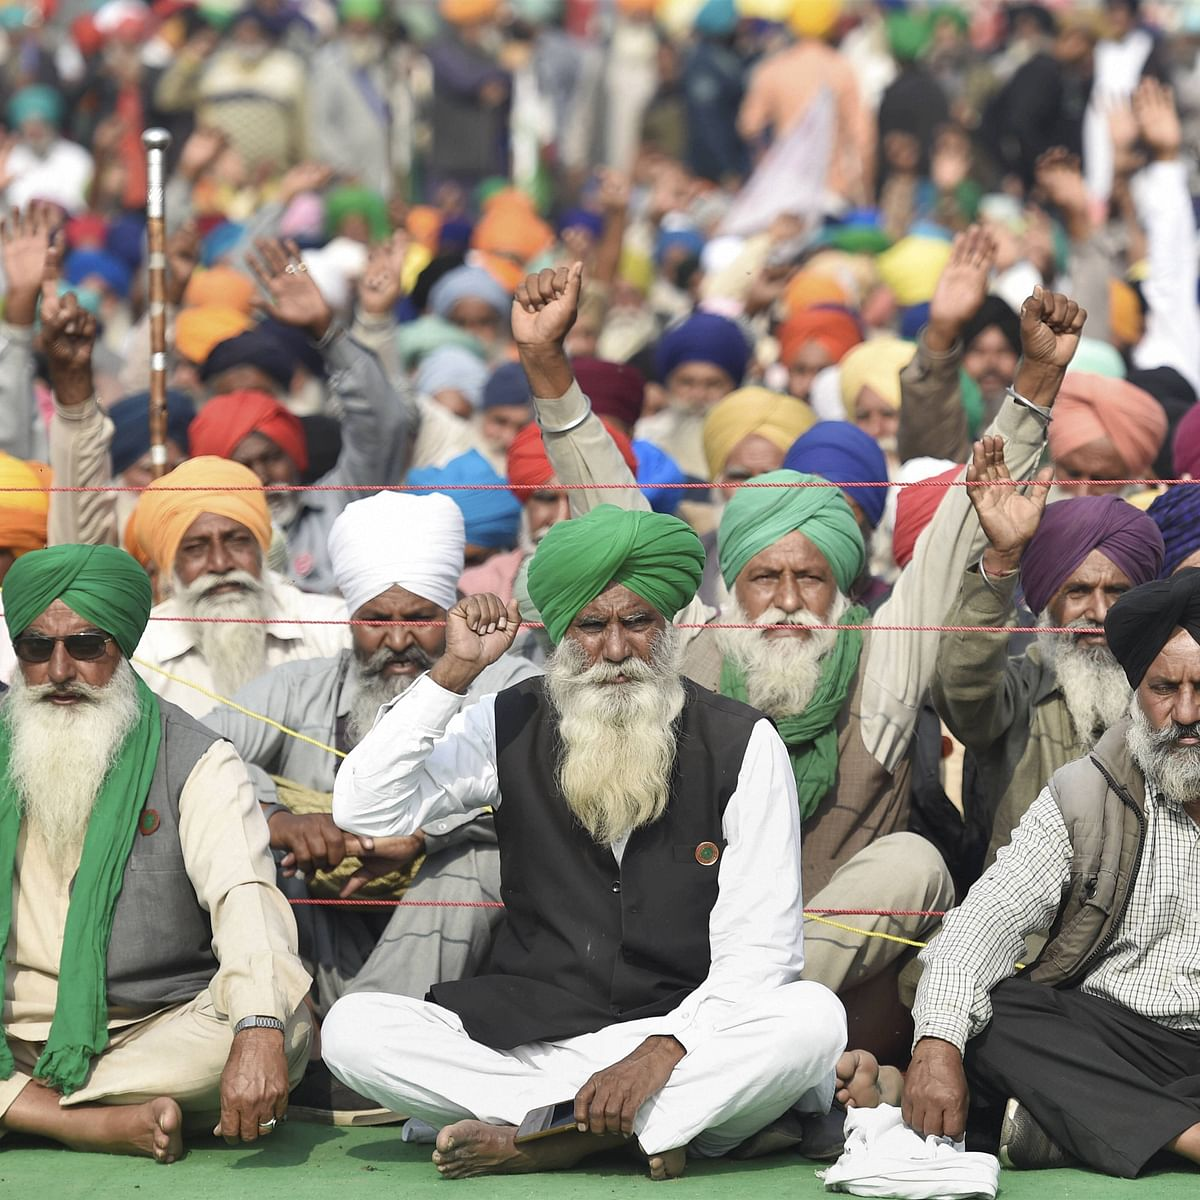 Punjab: Former sportspersons to return awards in support of protesting farmers